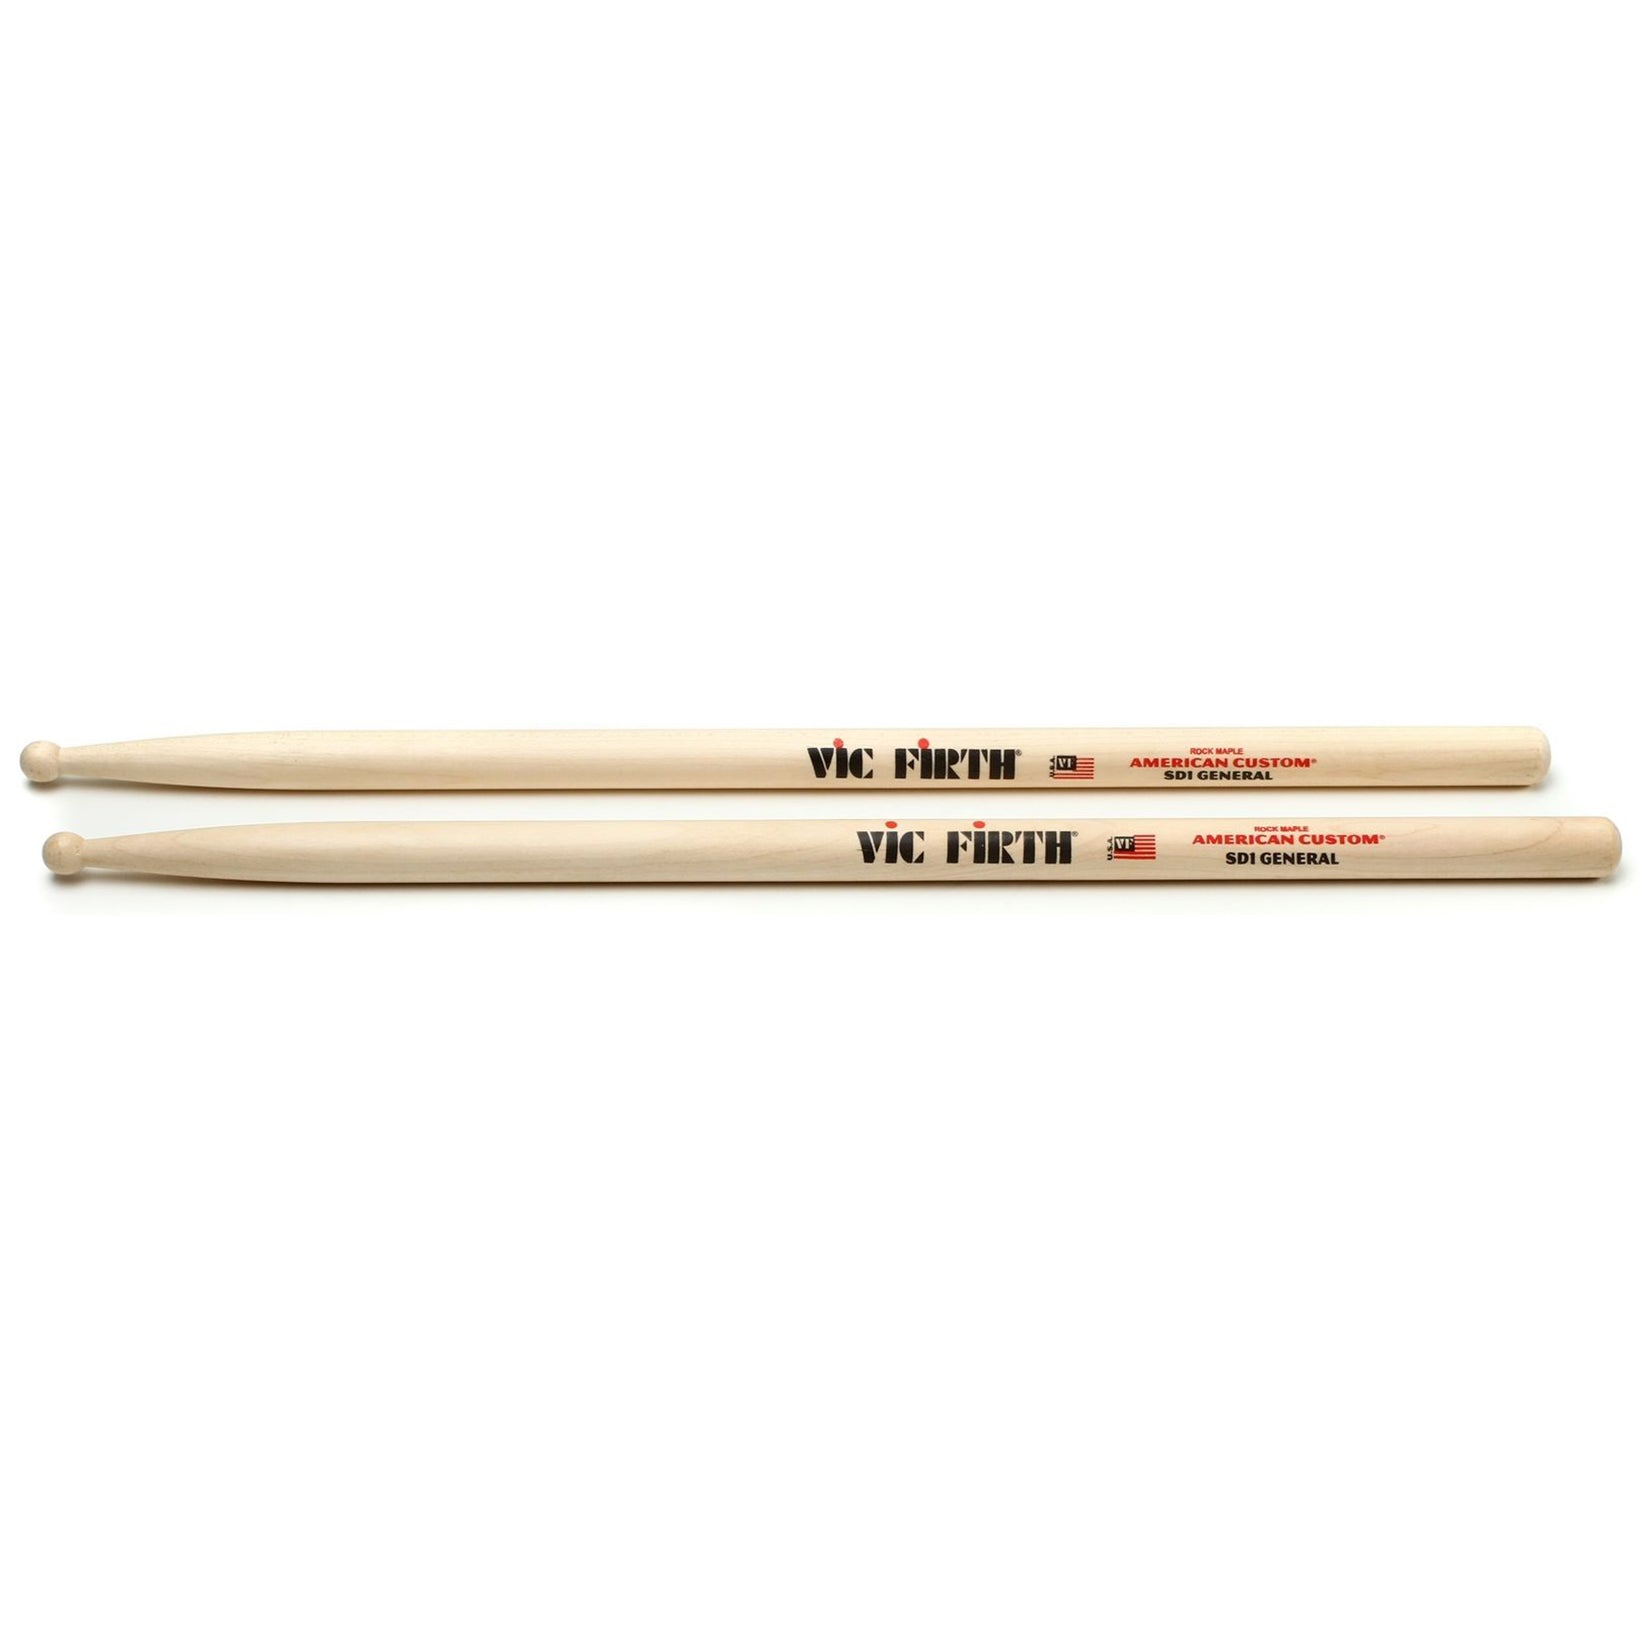 Shop online for Vic Firth SD1 General today.  Now available for purchase from Midlothian Music of Orland Park, Illinois, USA